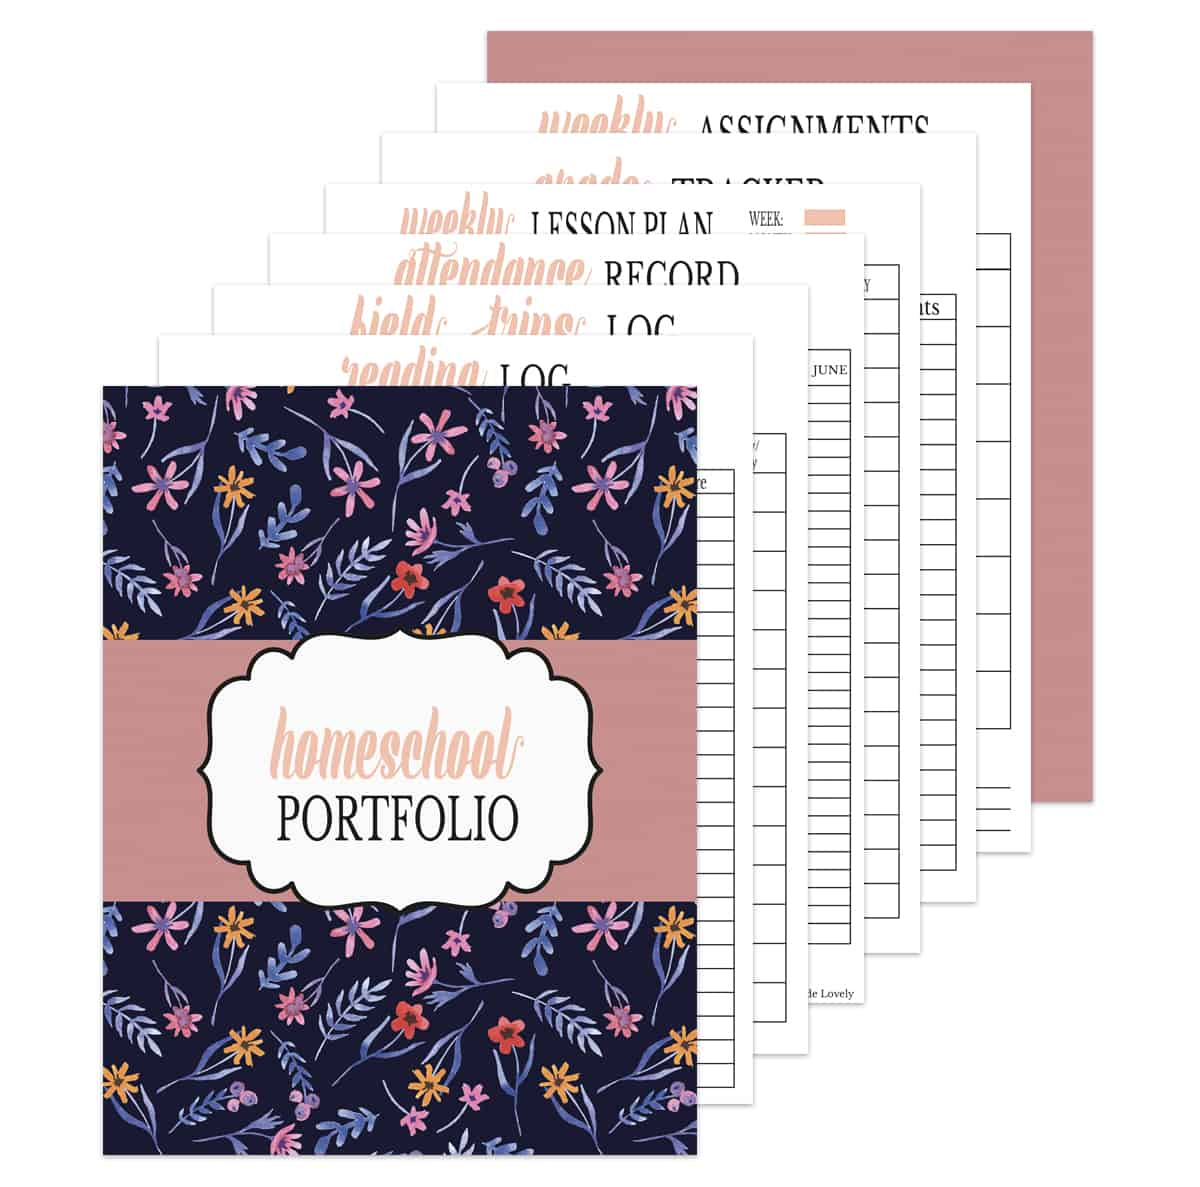 picture about Free Printable Homeschool Record Keeping Forms referred to as Homeschool Background Preserving - How toward Acquire a Portfolio inside 5